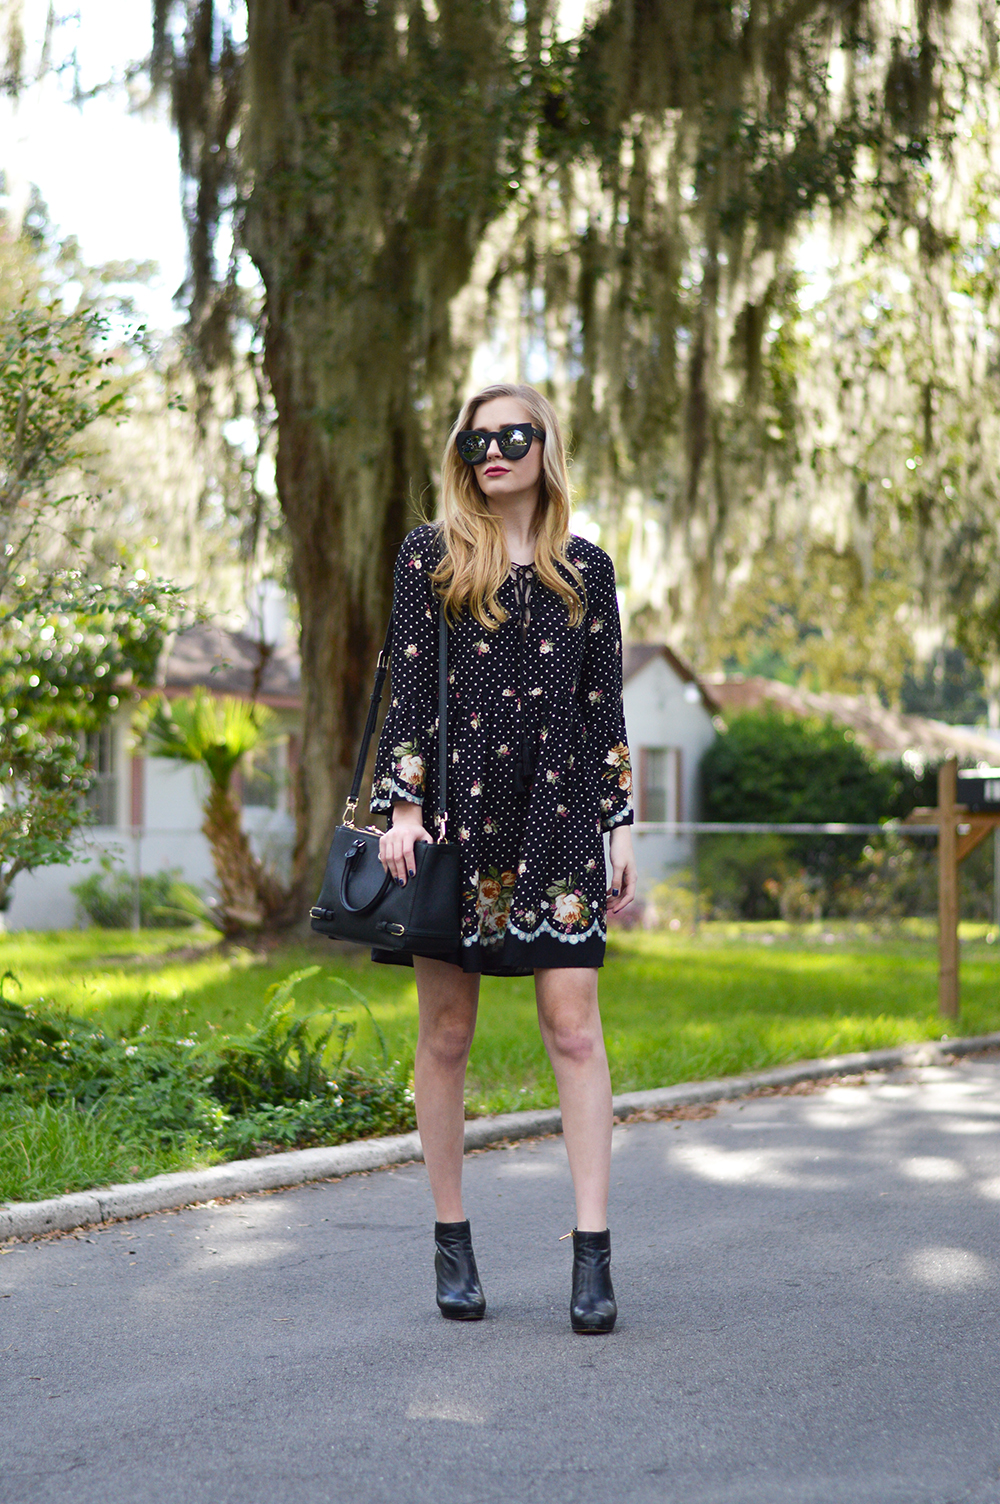 thistle-and-finn-styelled-fashion-blog-blogger-style-fblogger-fall-trends-booties-sweater-weather-tory-burch-michael-kors-shop-ditto-endless-eyewear-kylie-cosmetics-dresses-october-03